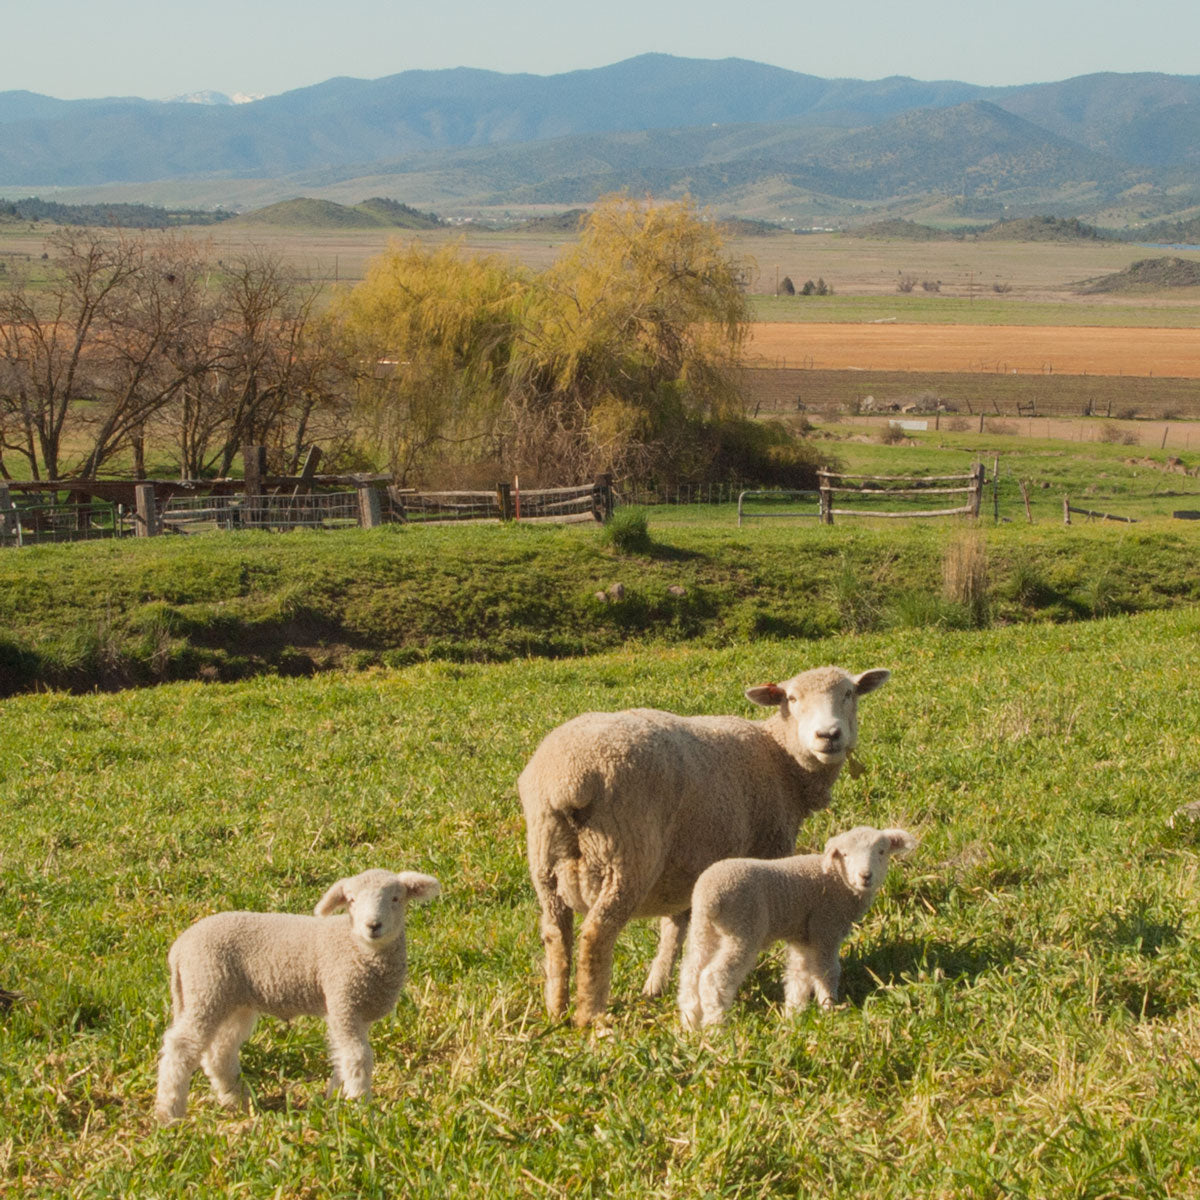 Tawanda Farms sheep on a farm in CA.  A Momma sheep and two little babies in a green field with mountains in the background on a sunny day.